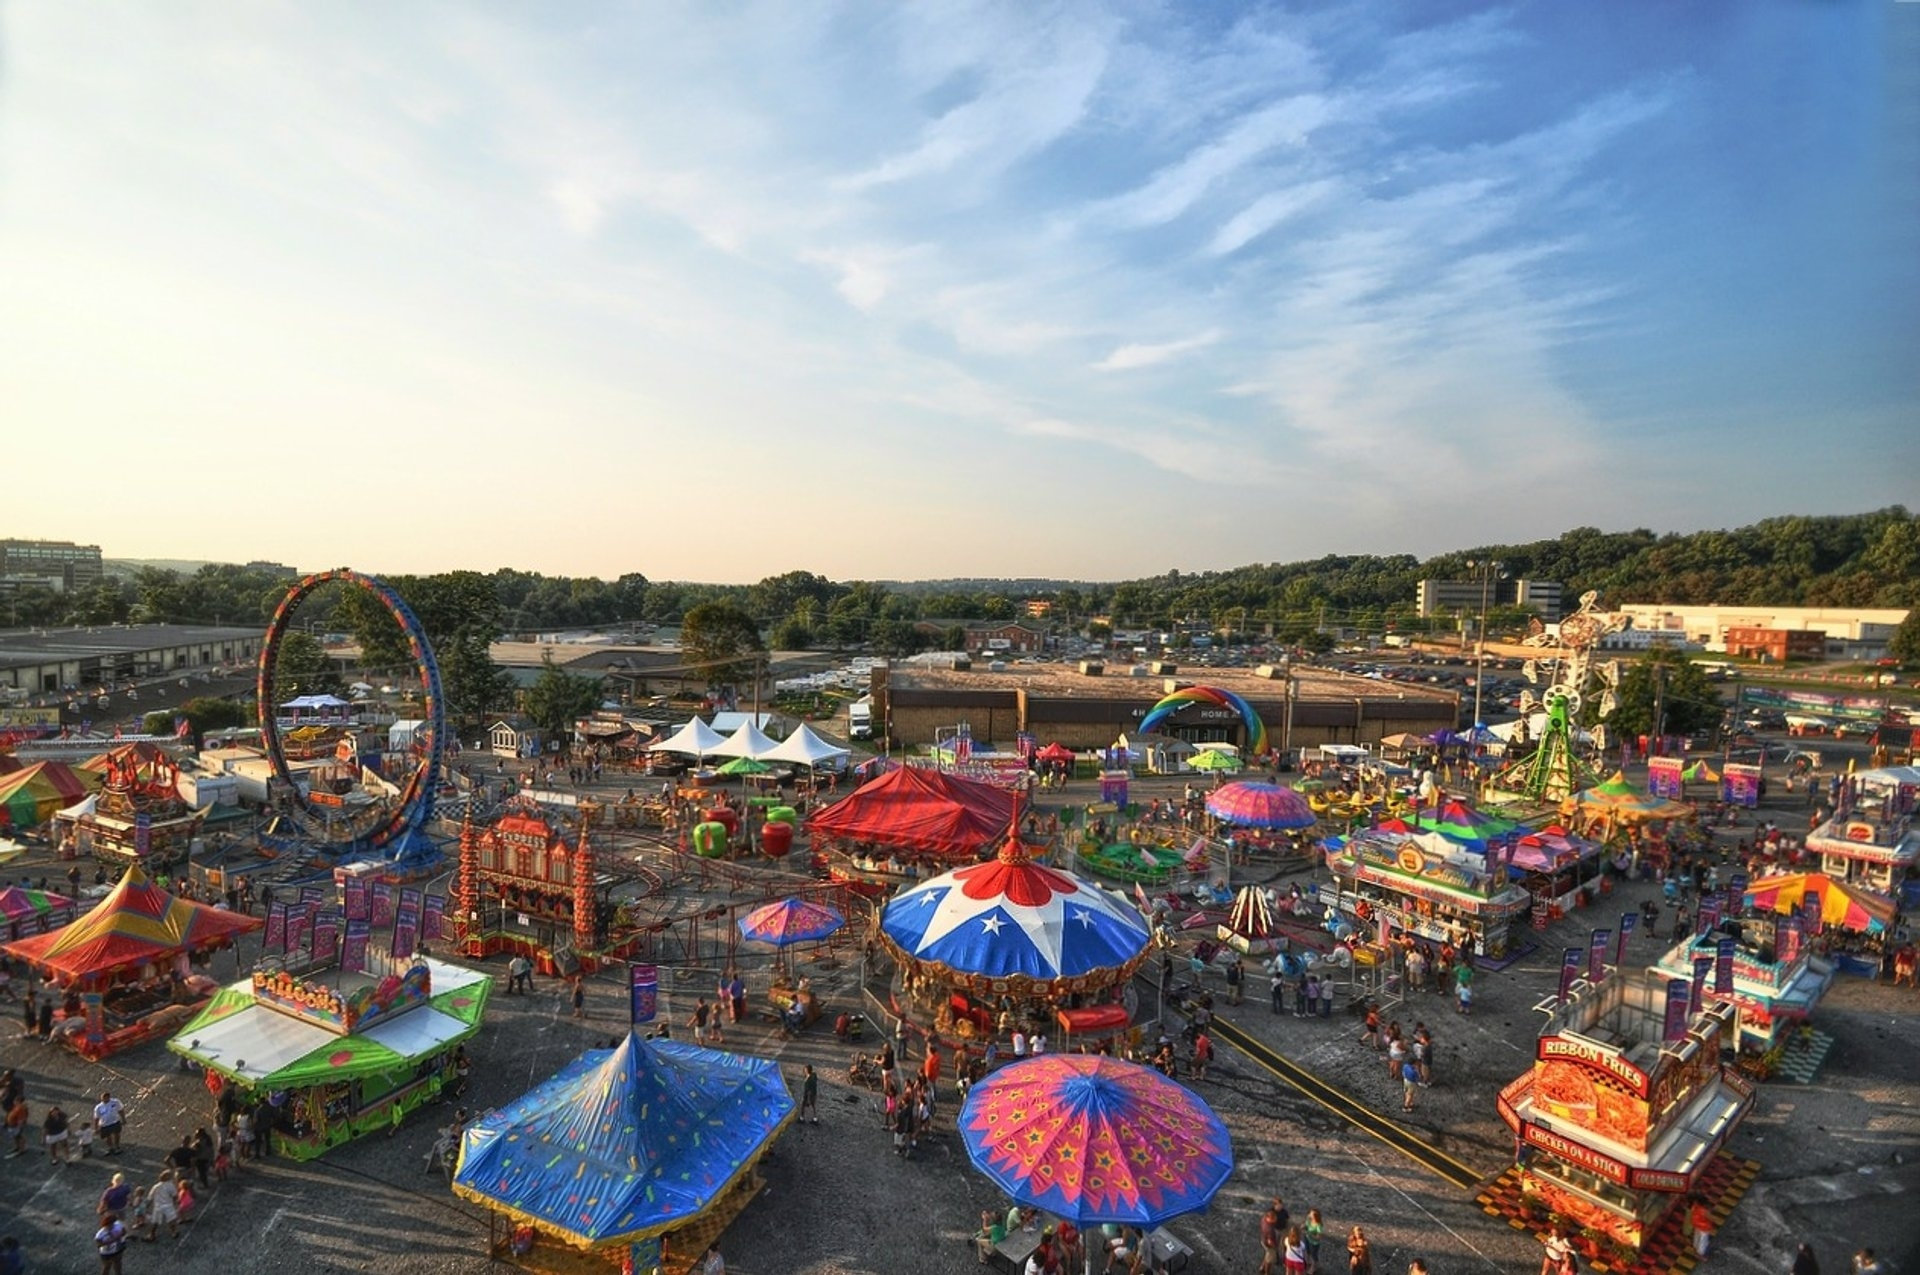 Maryland State Fair 2021 - Dates